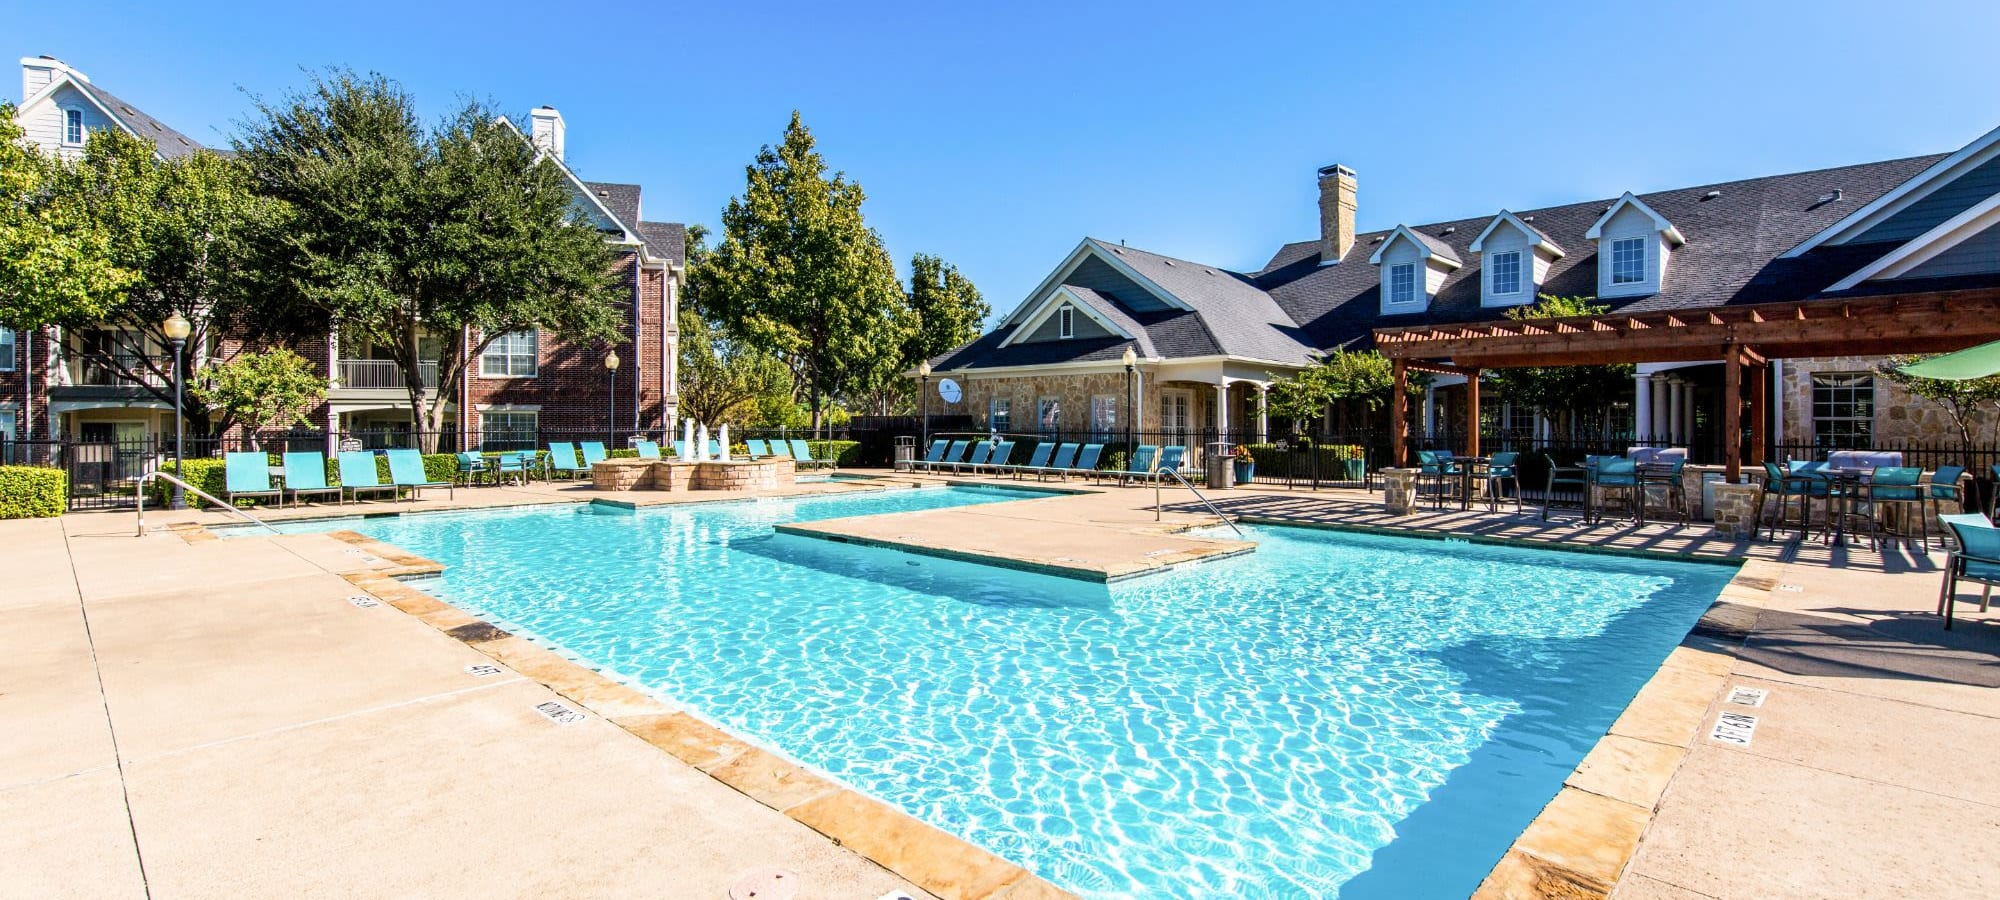 Amenities at Marquis at Silver Oaks in Grapevine, Texas